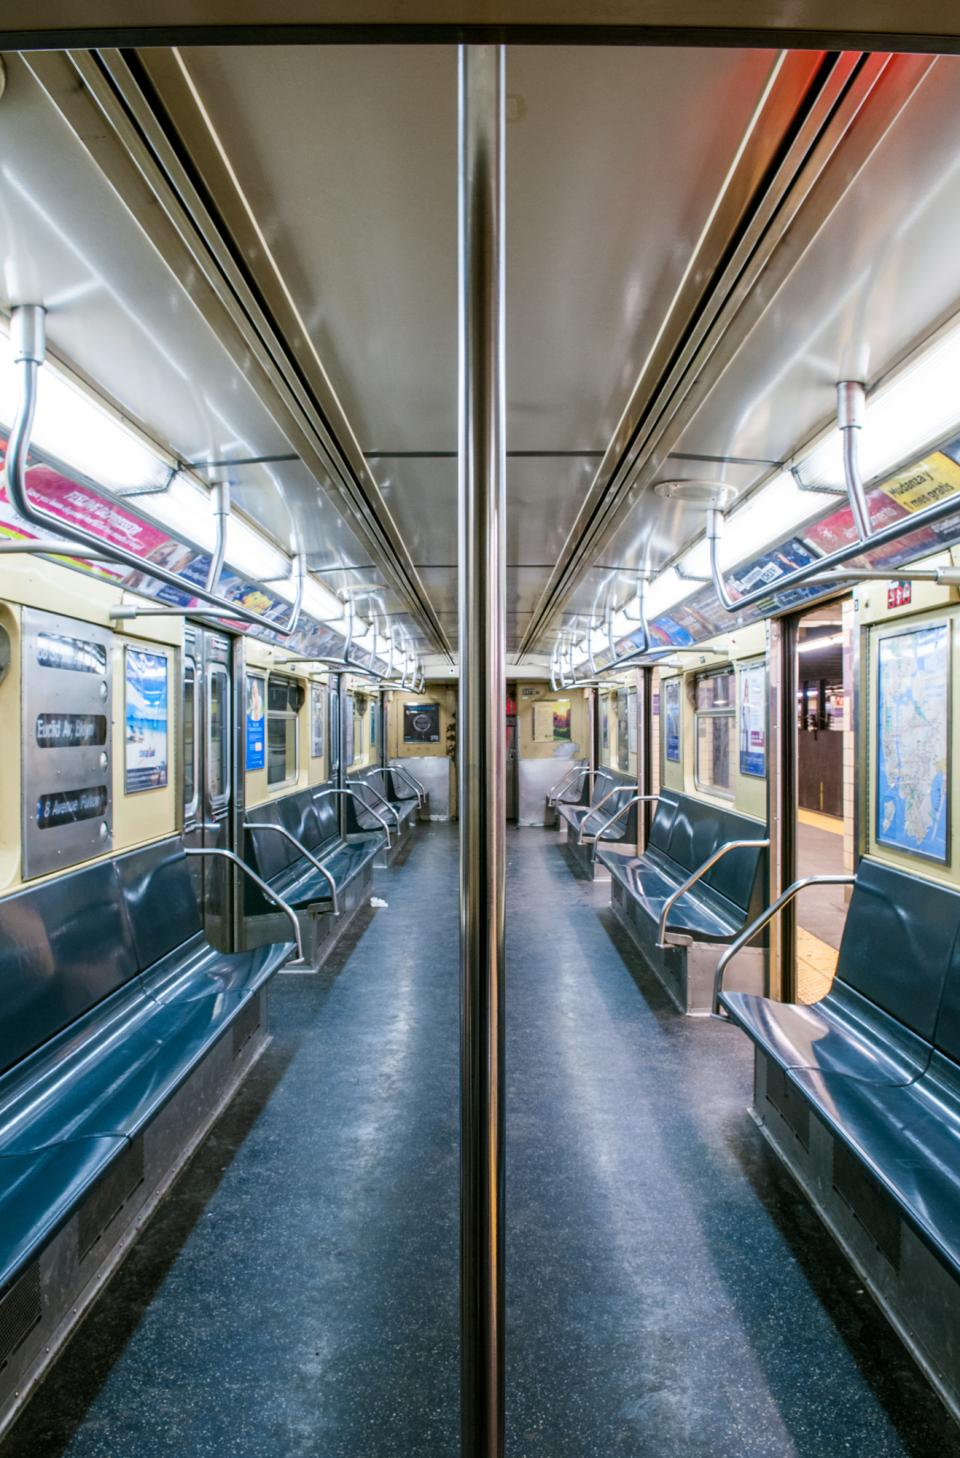 We know that most subway cars do not narrow as one walks through them. Converging lines here add depth to the scene.